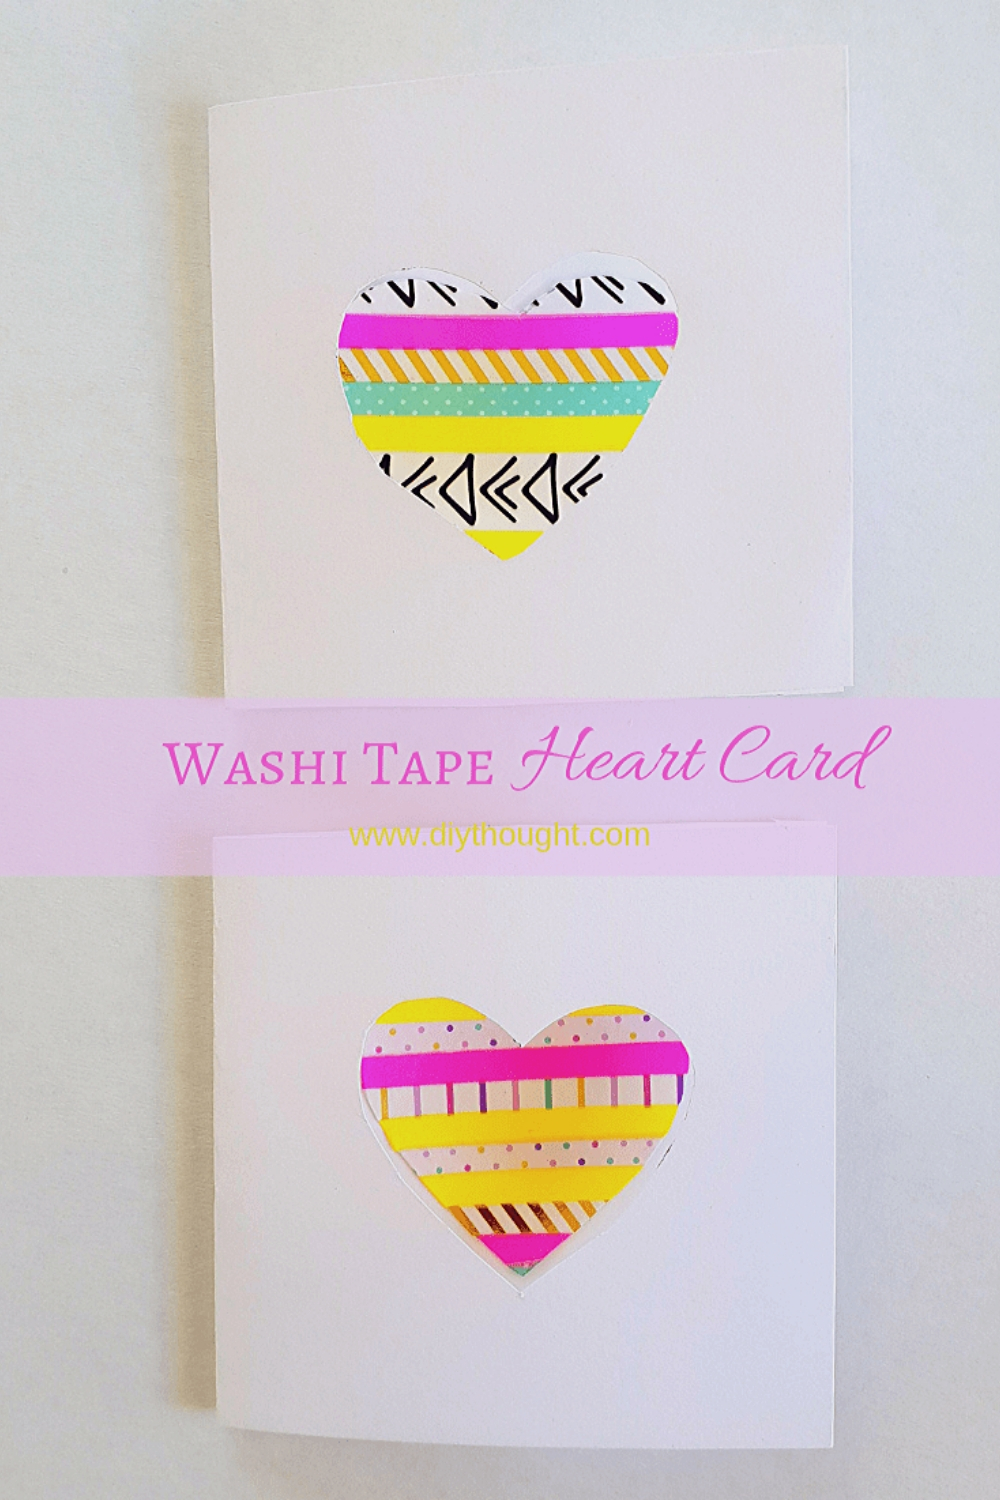 washi tape heart card